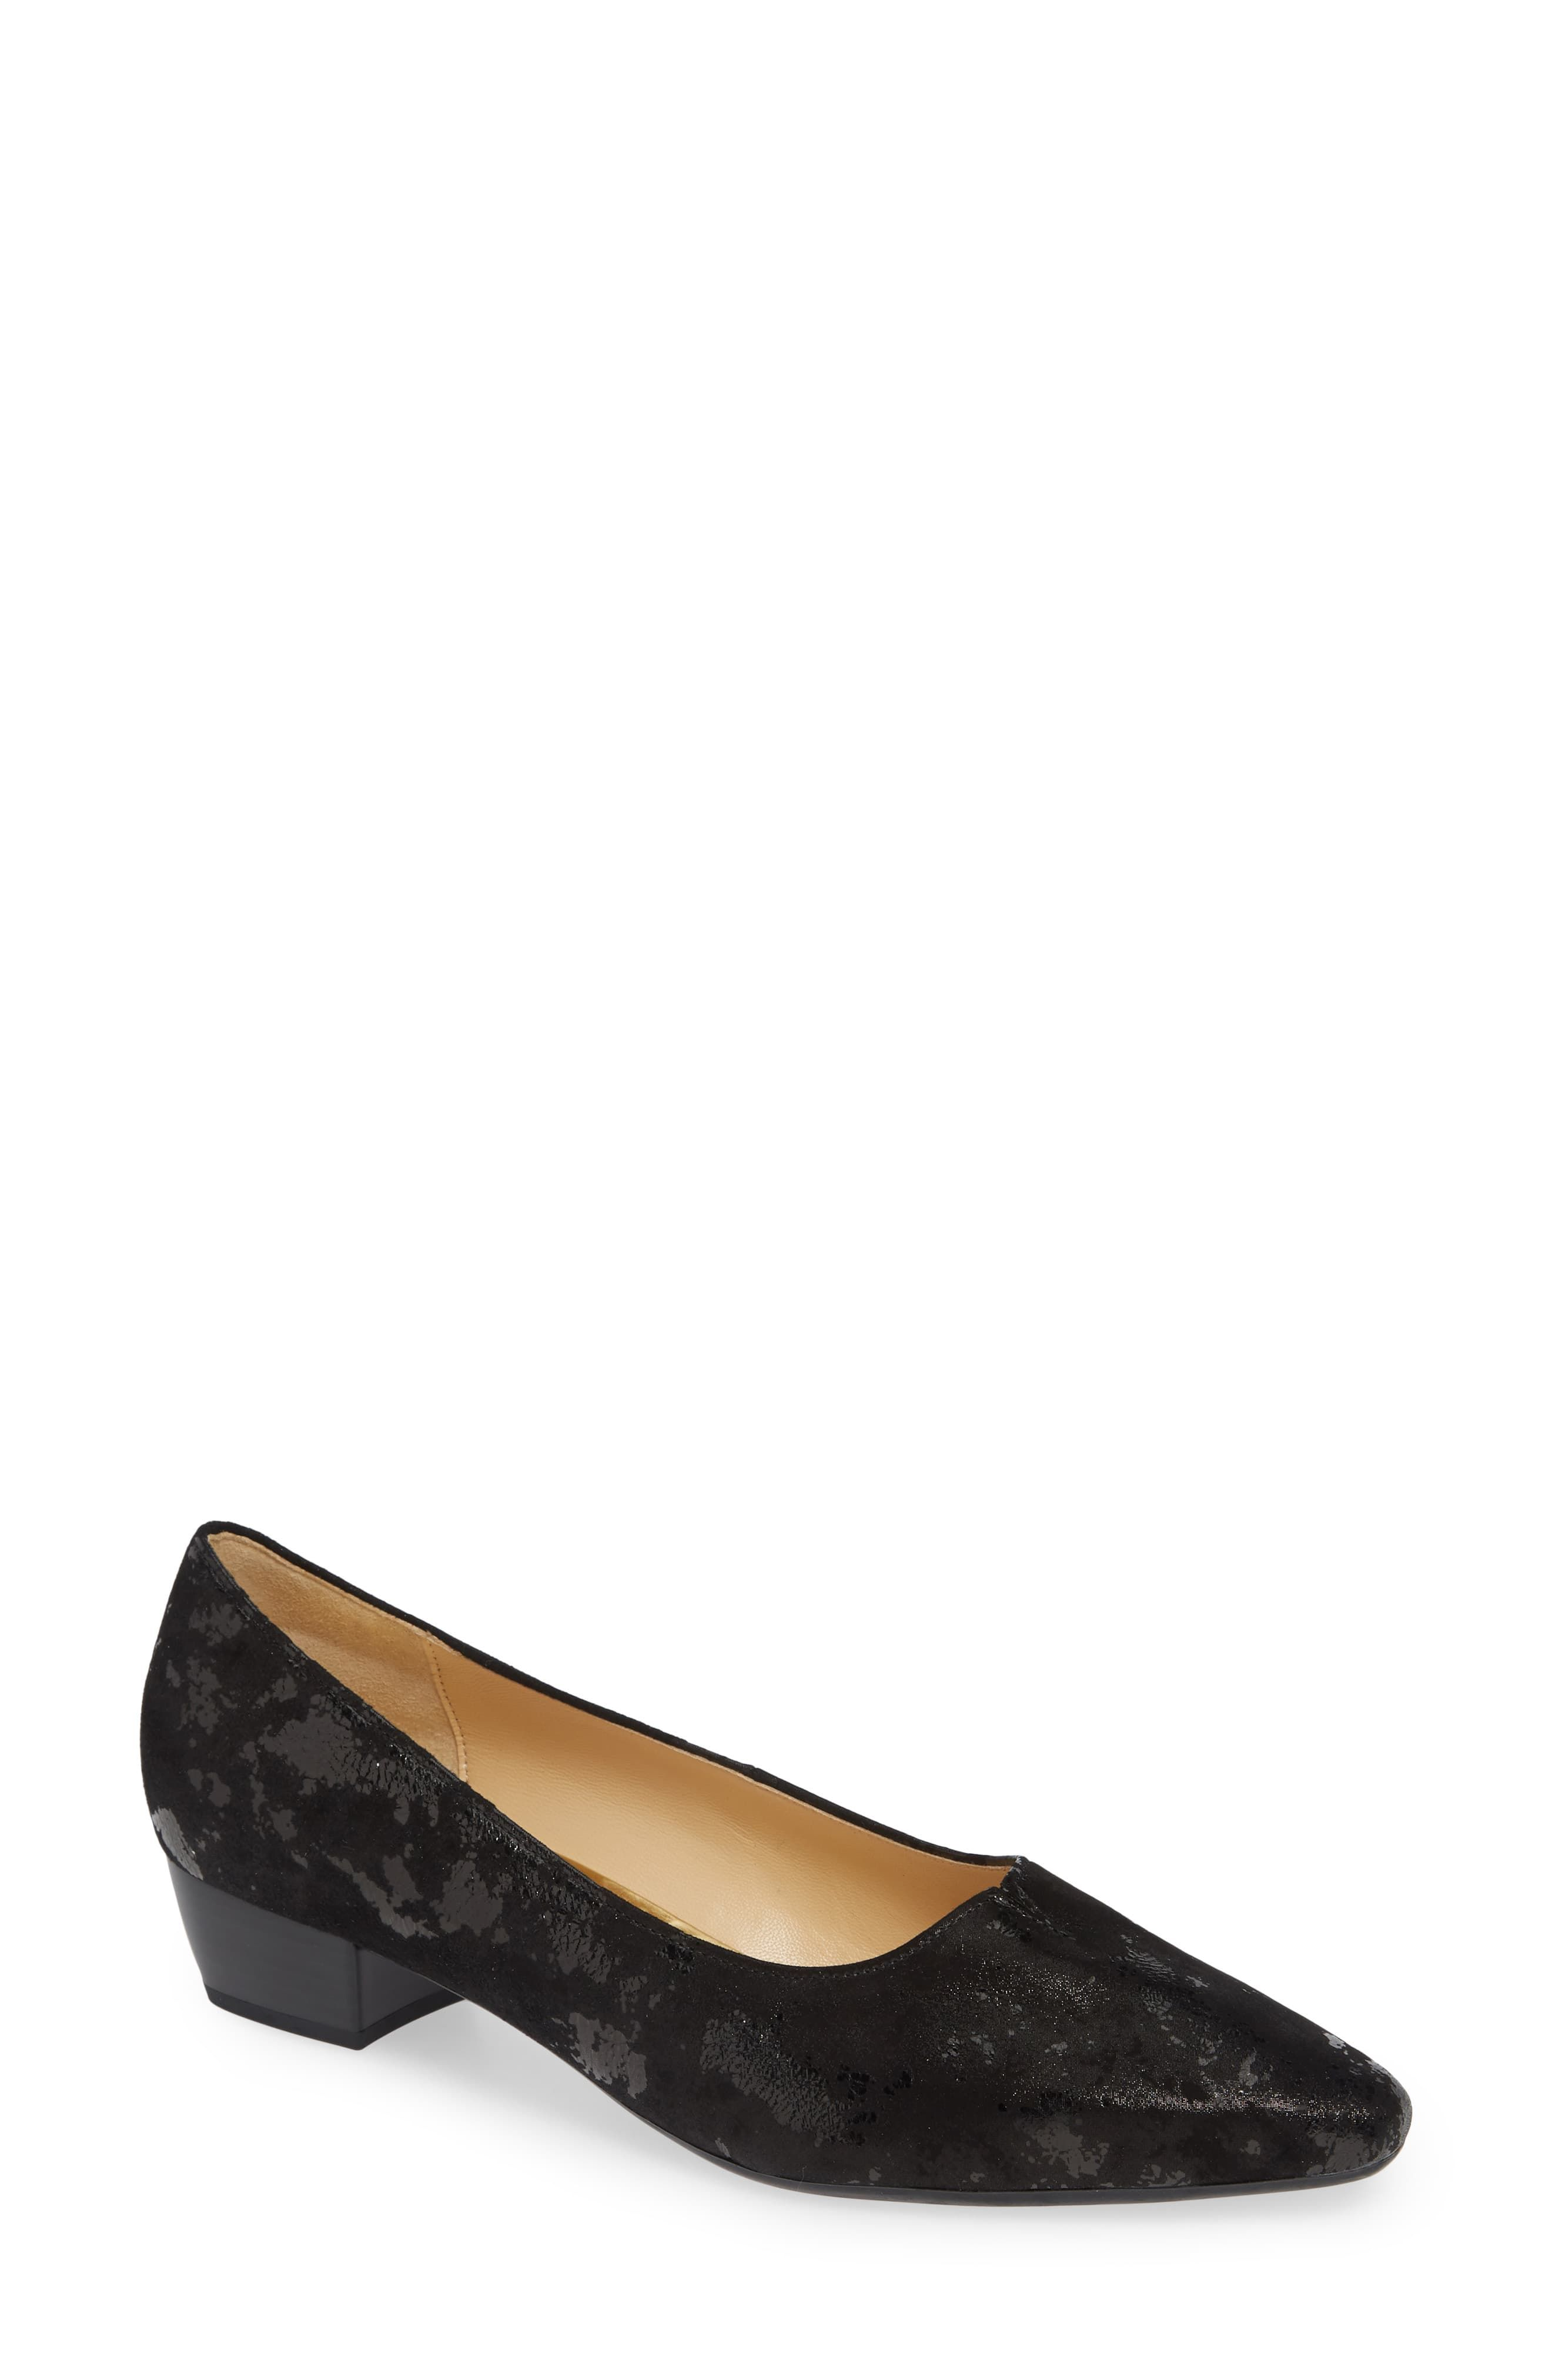 a0ab507829004 Women's Gabor Low Pump, Size 5.5 M - Black in 2019   Products ...